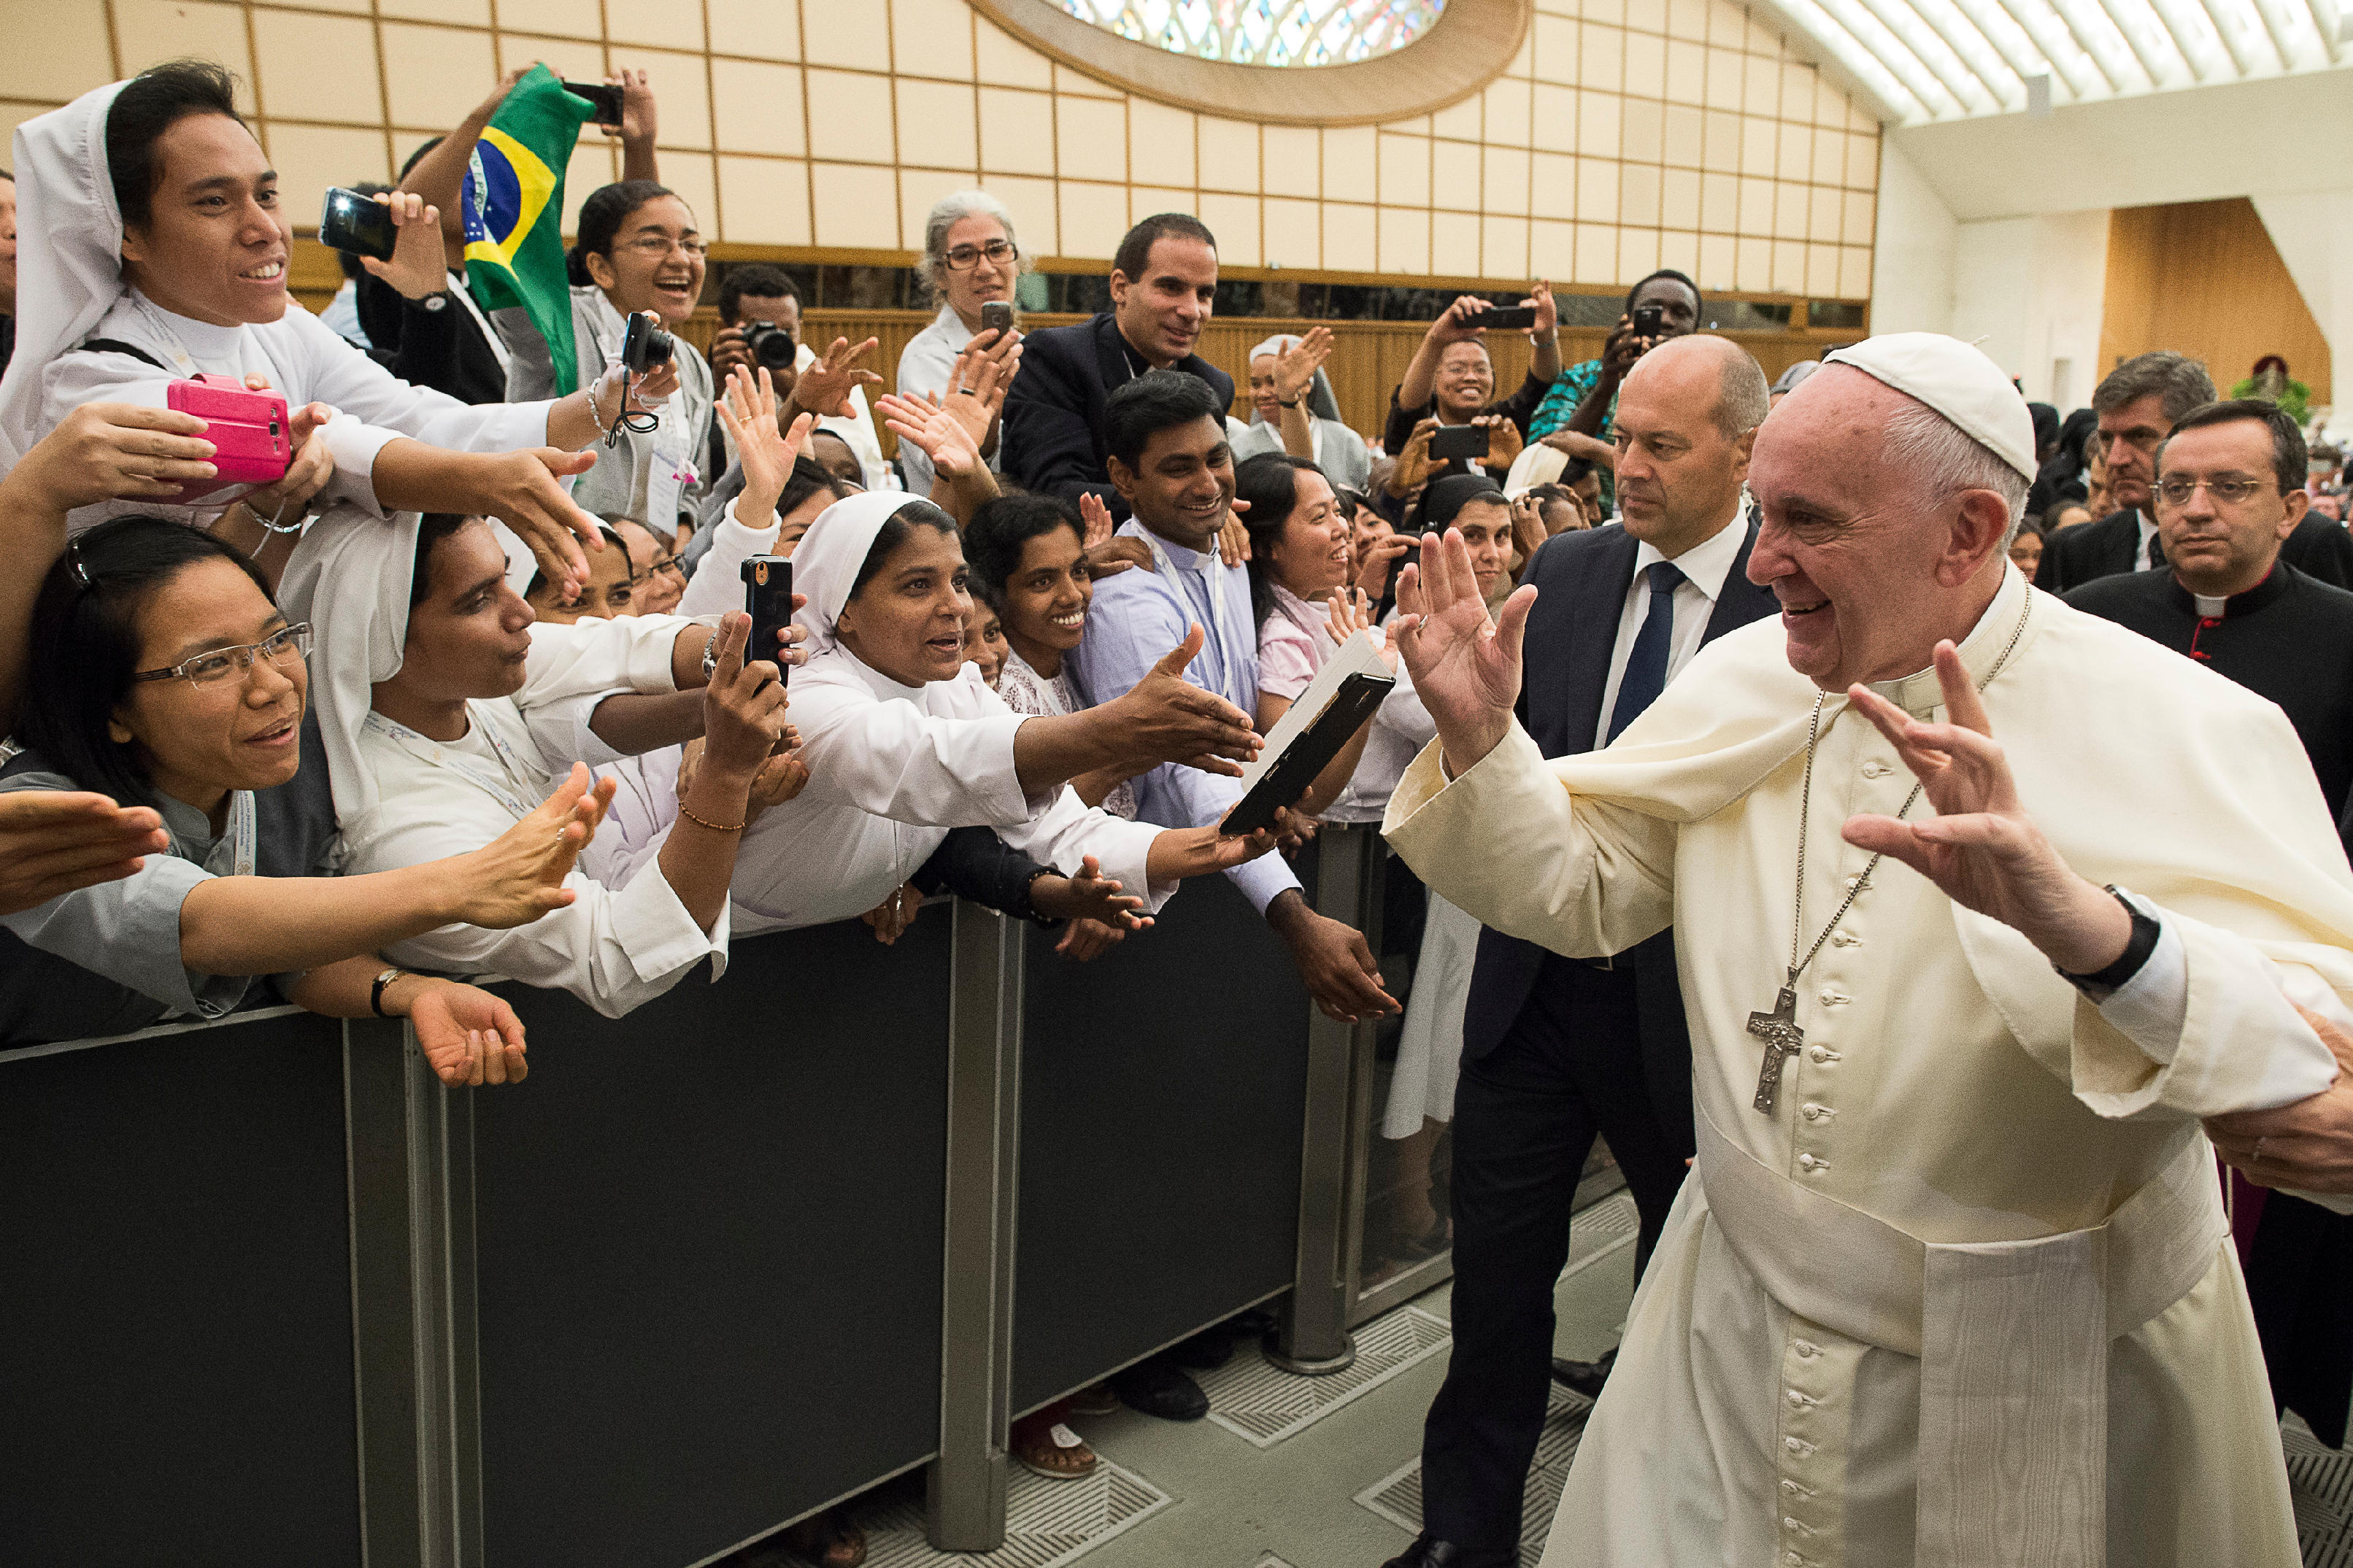 Audience with Young Consecrated Men and Women in the Paul VI Audience Hall